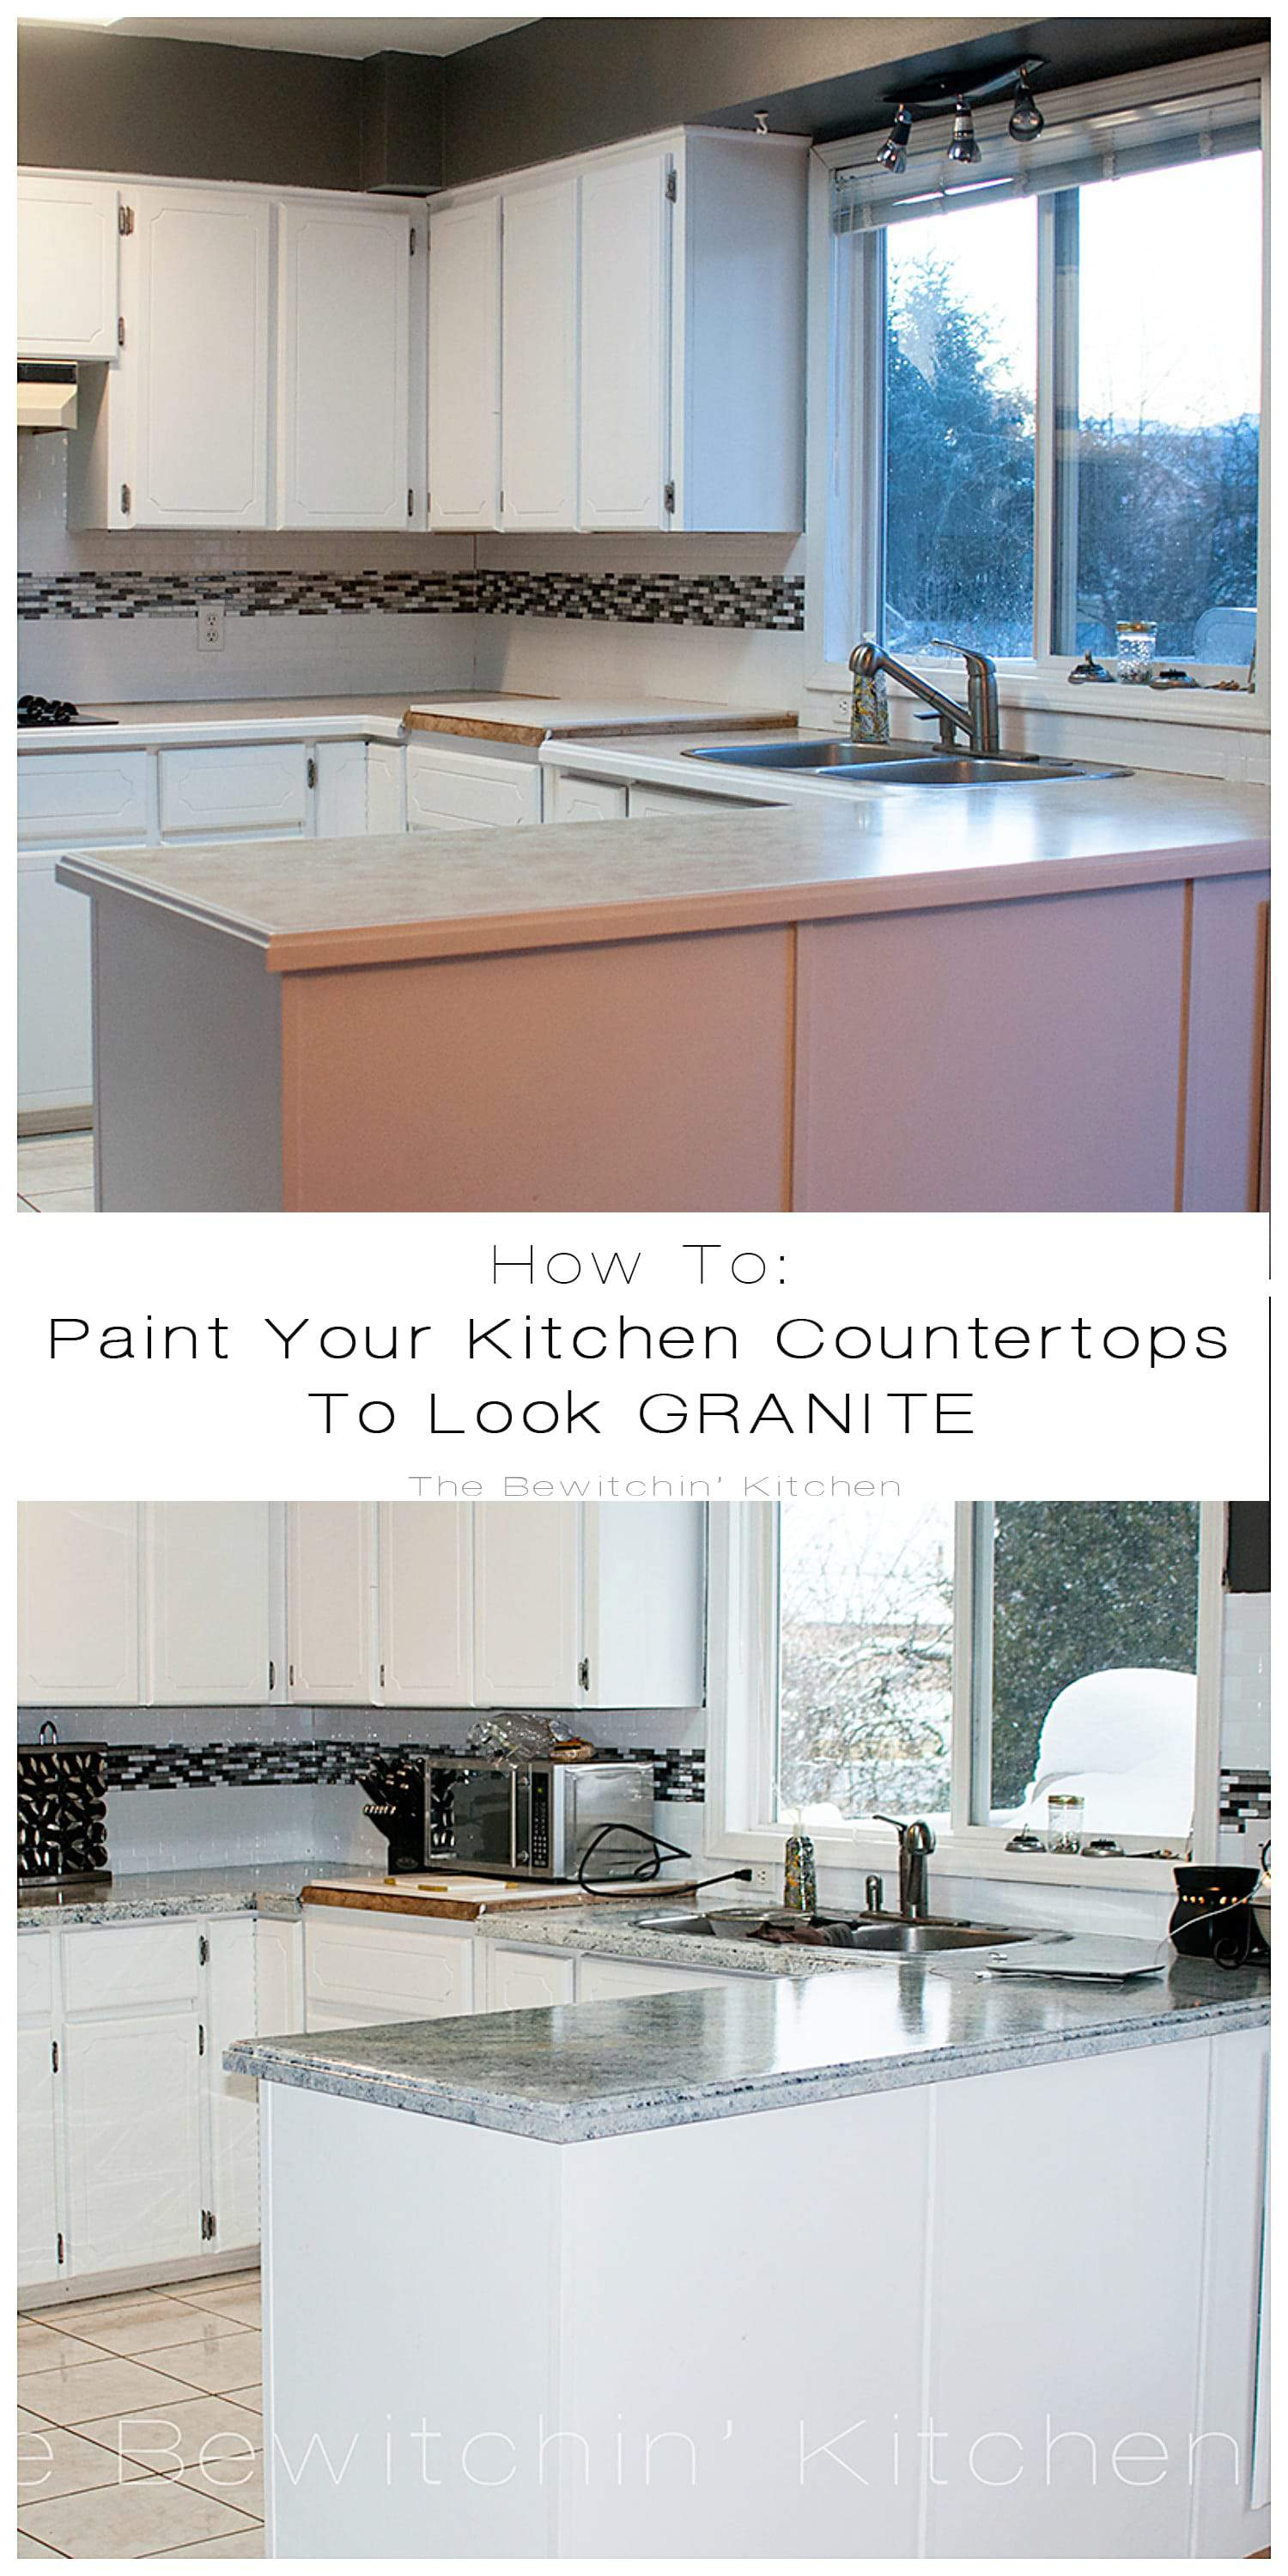 how to paint kitchen countertops to look like granite] - 28 images ...